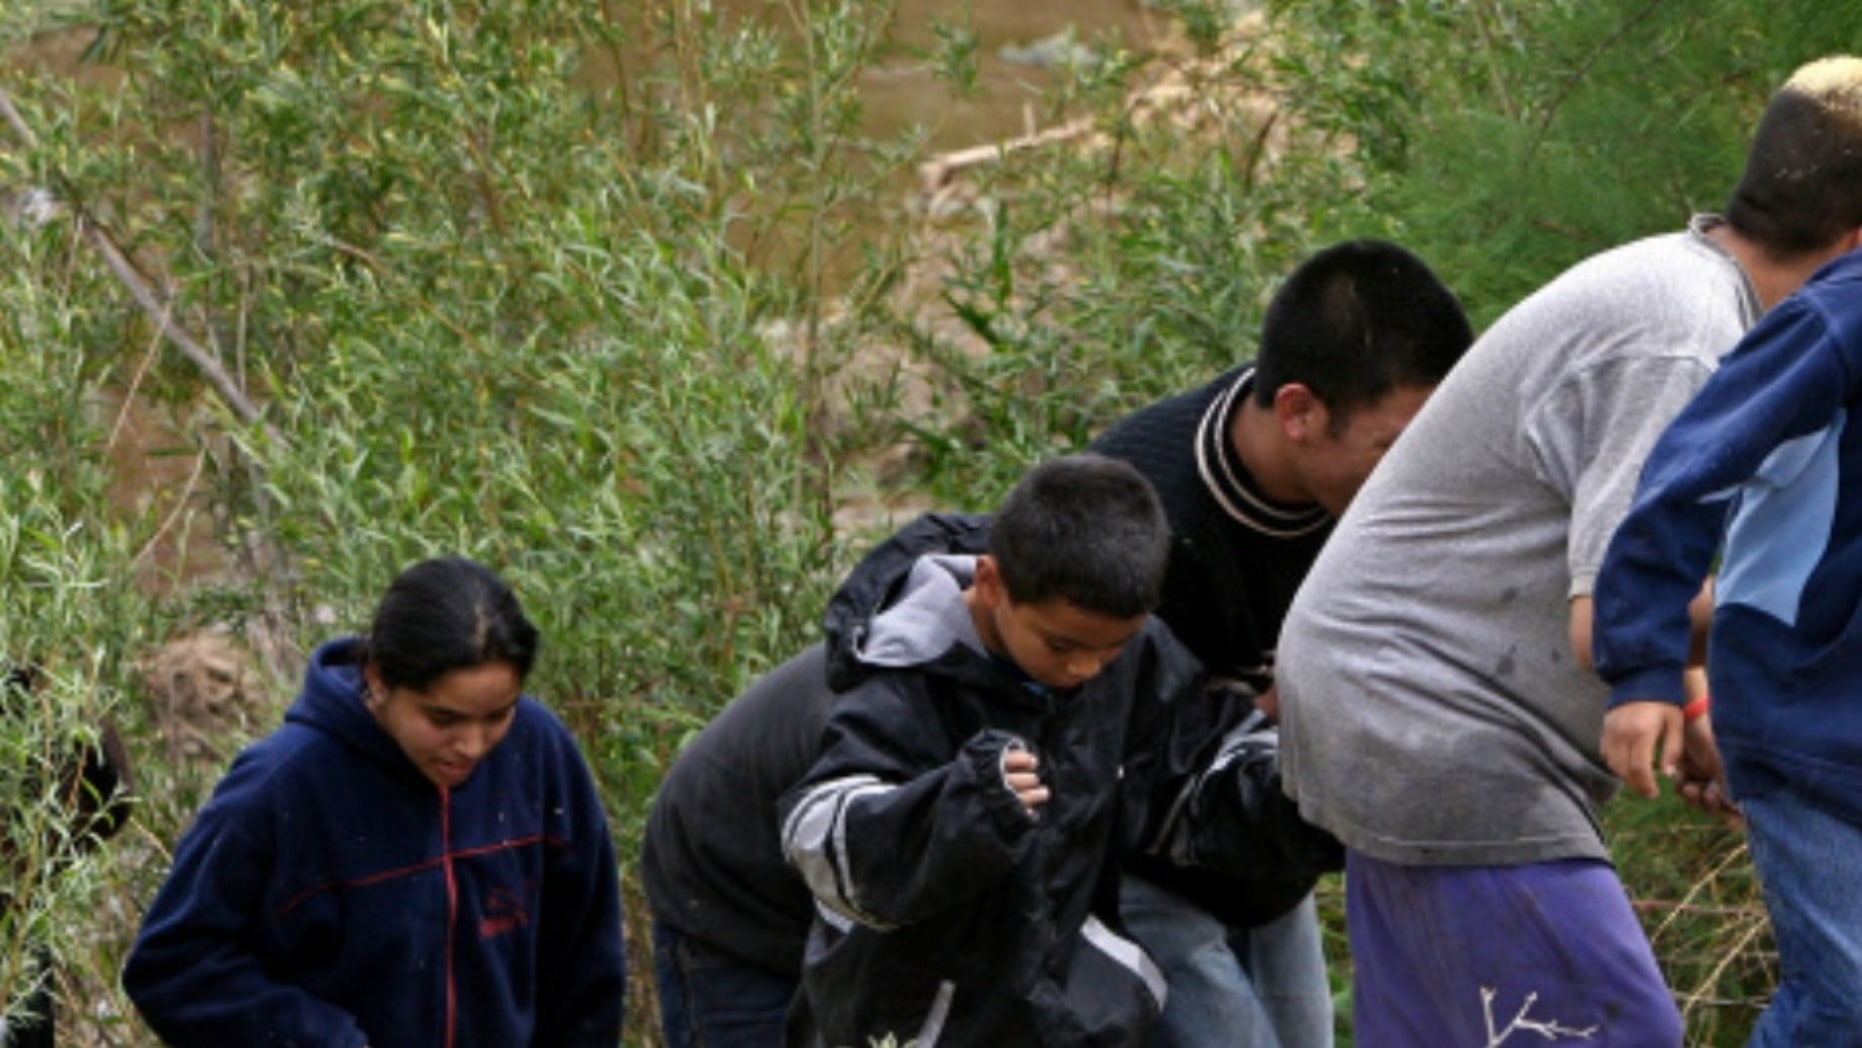 illegal immigrant children Getty Images/Omar Torres